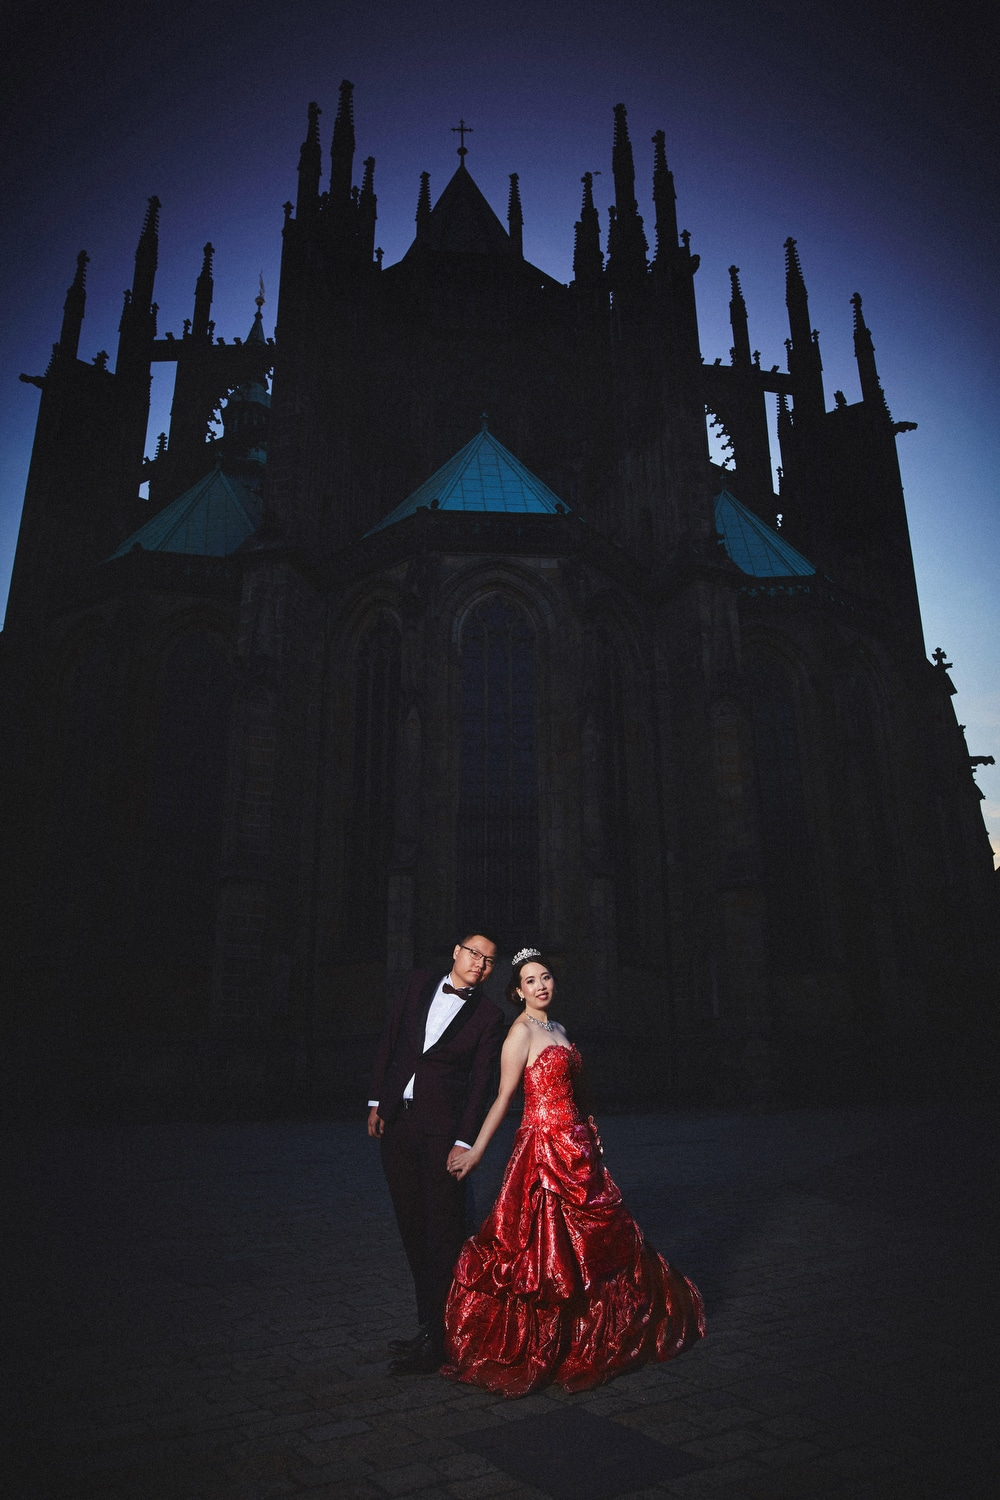 Prague Castle, young couple holding hands, red dress, night image, St. Vitus, blue sky